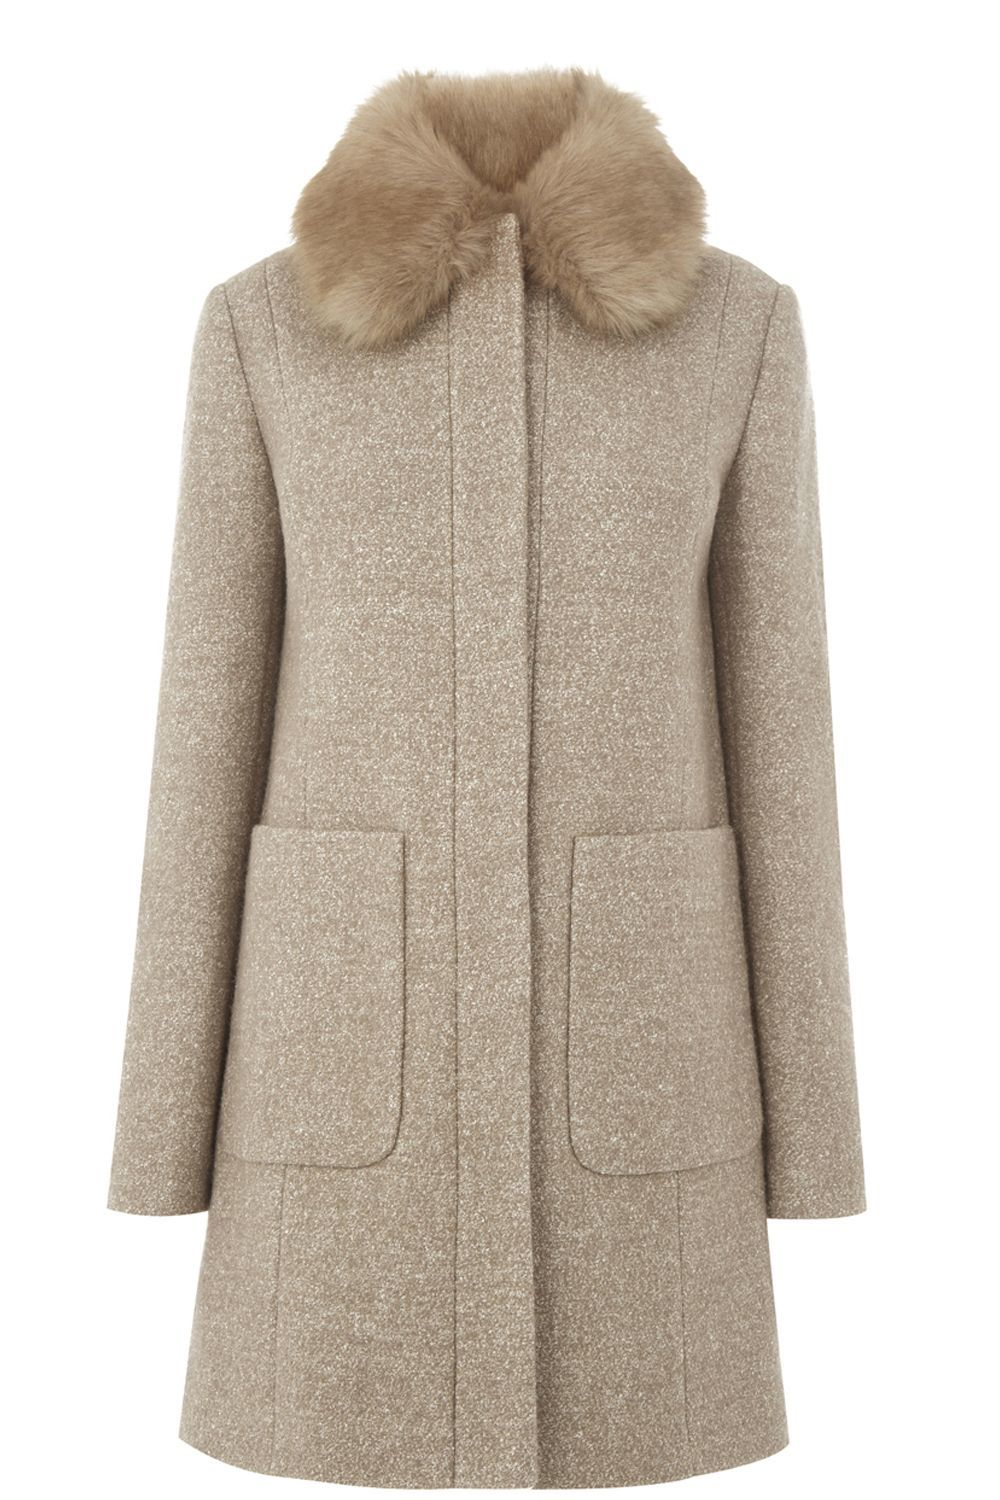 Swing Faux Fur Collar Coat, Beige - pattern: plain; fit: loose; style: single breasted; length: mid thigh; predominant colour: stone; occasions: casual; fibres: polyester/polyamide - mix; sleeve length: long sleeve; sleeve style: standard; collar: fur; collar break: high; pattern type: fabric; texture group: woven bulky/heavy; embellishment: fur; season: a/w 2016